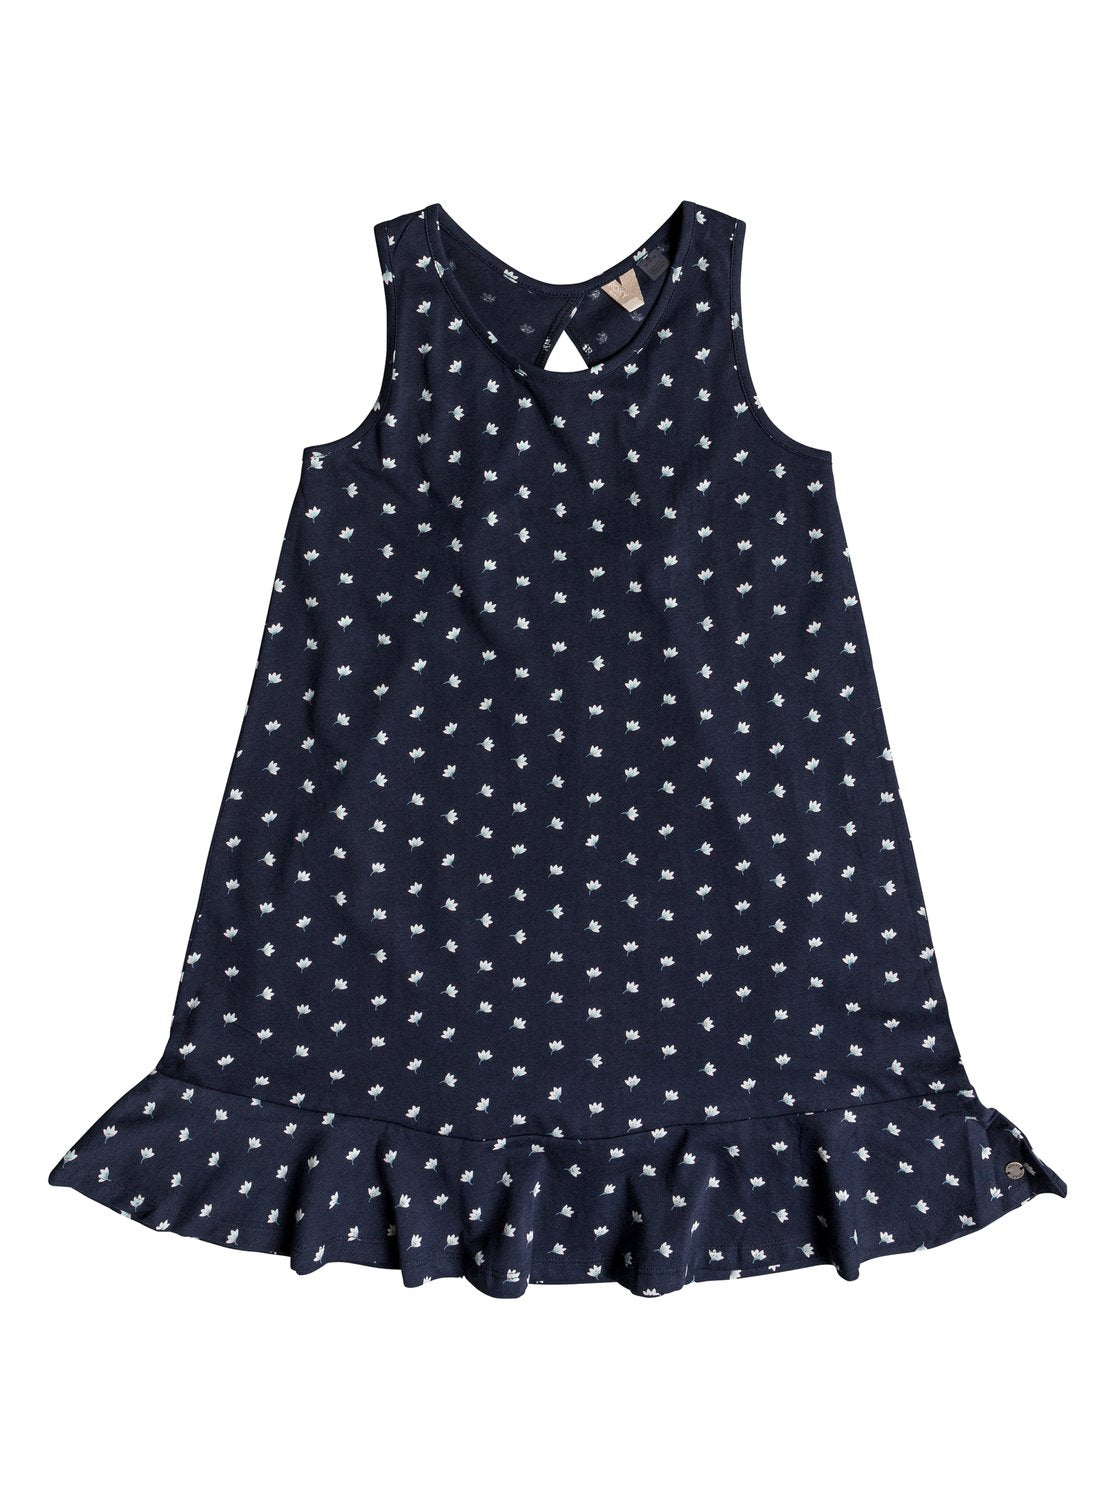 Roxy Girls Mission Bell Tank Dress In Dress Blue Flower Twist